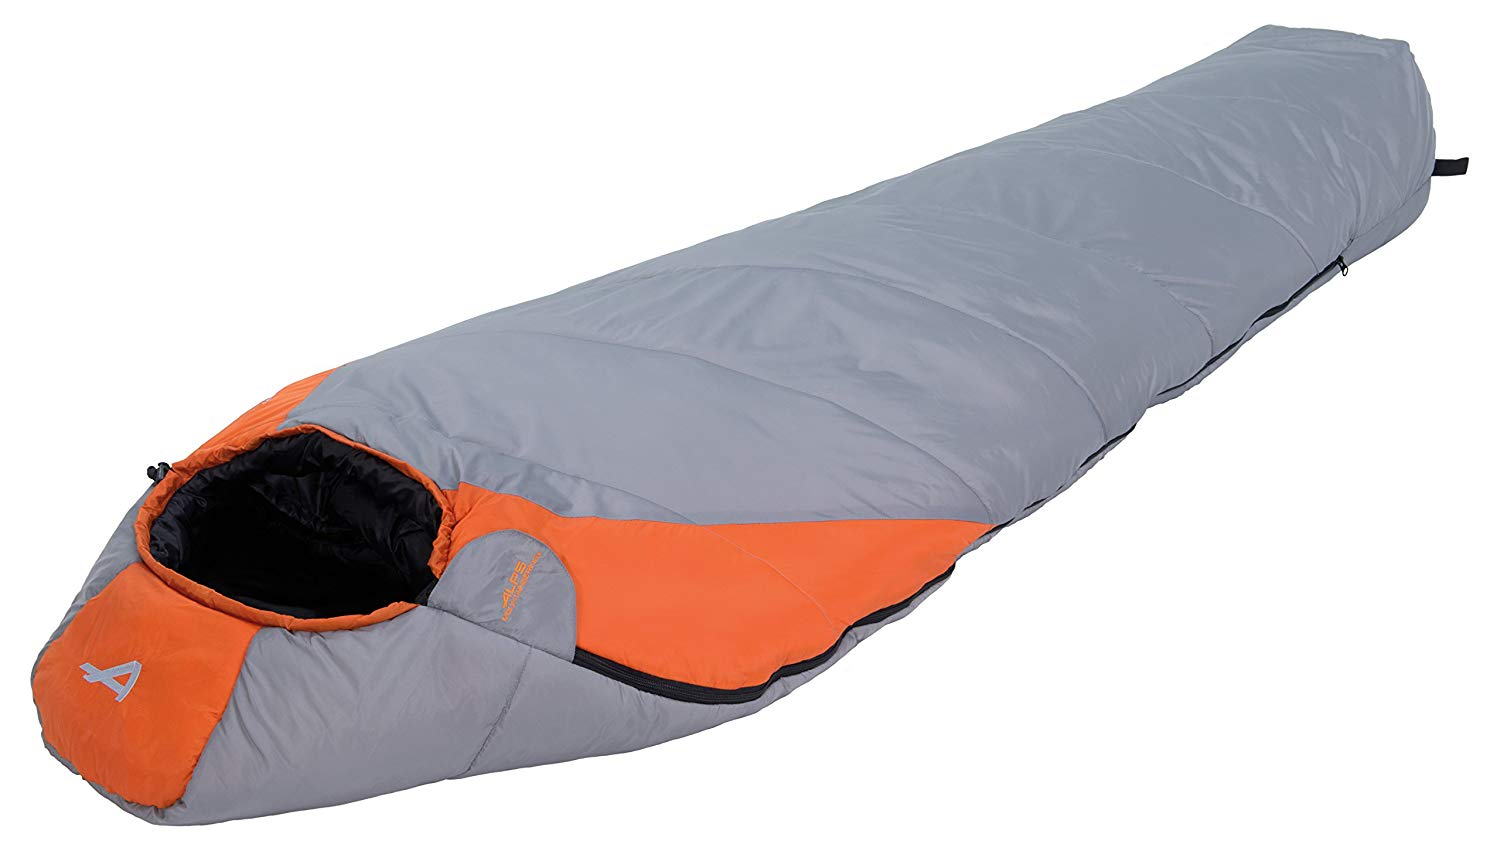 An image of Alps Mountaineering Desert Pine 4611023 20 Degree Sleeping Bag